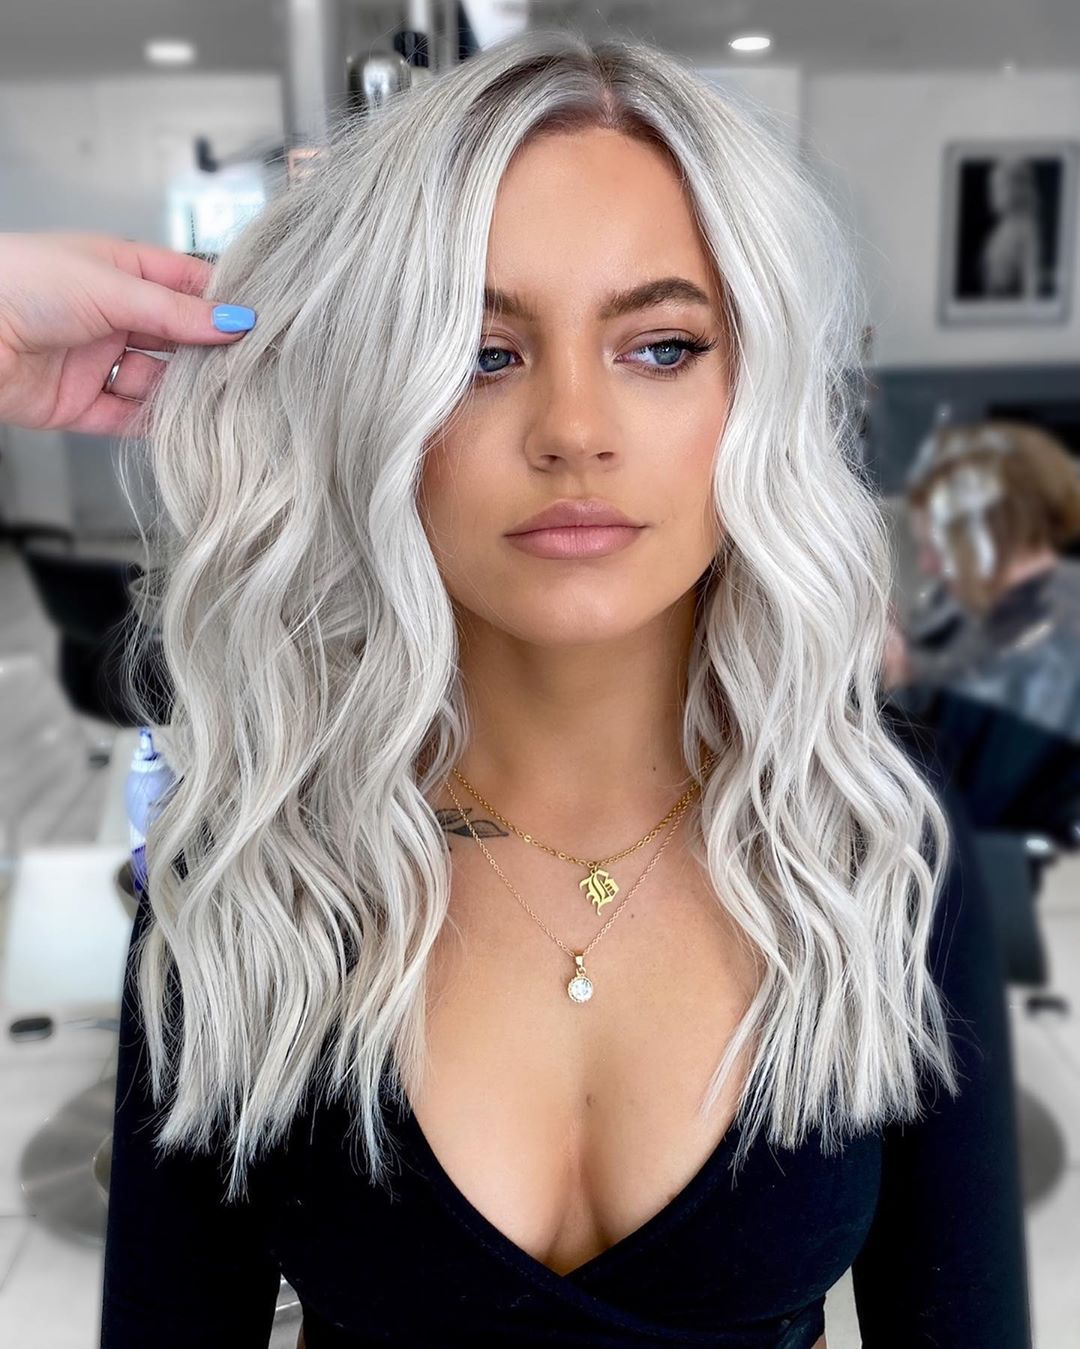 2020 Best Lace Front Wigs Hot Pink Lace Front Wigs Human Hair Hair Color To Cover Gray Cotton Candy Pink Lace Front Wig Grey Wigs Short Hair